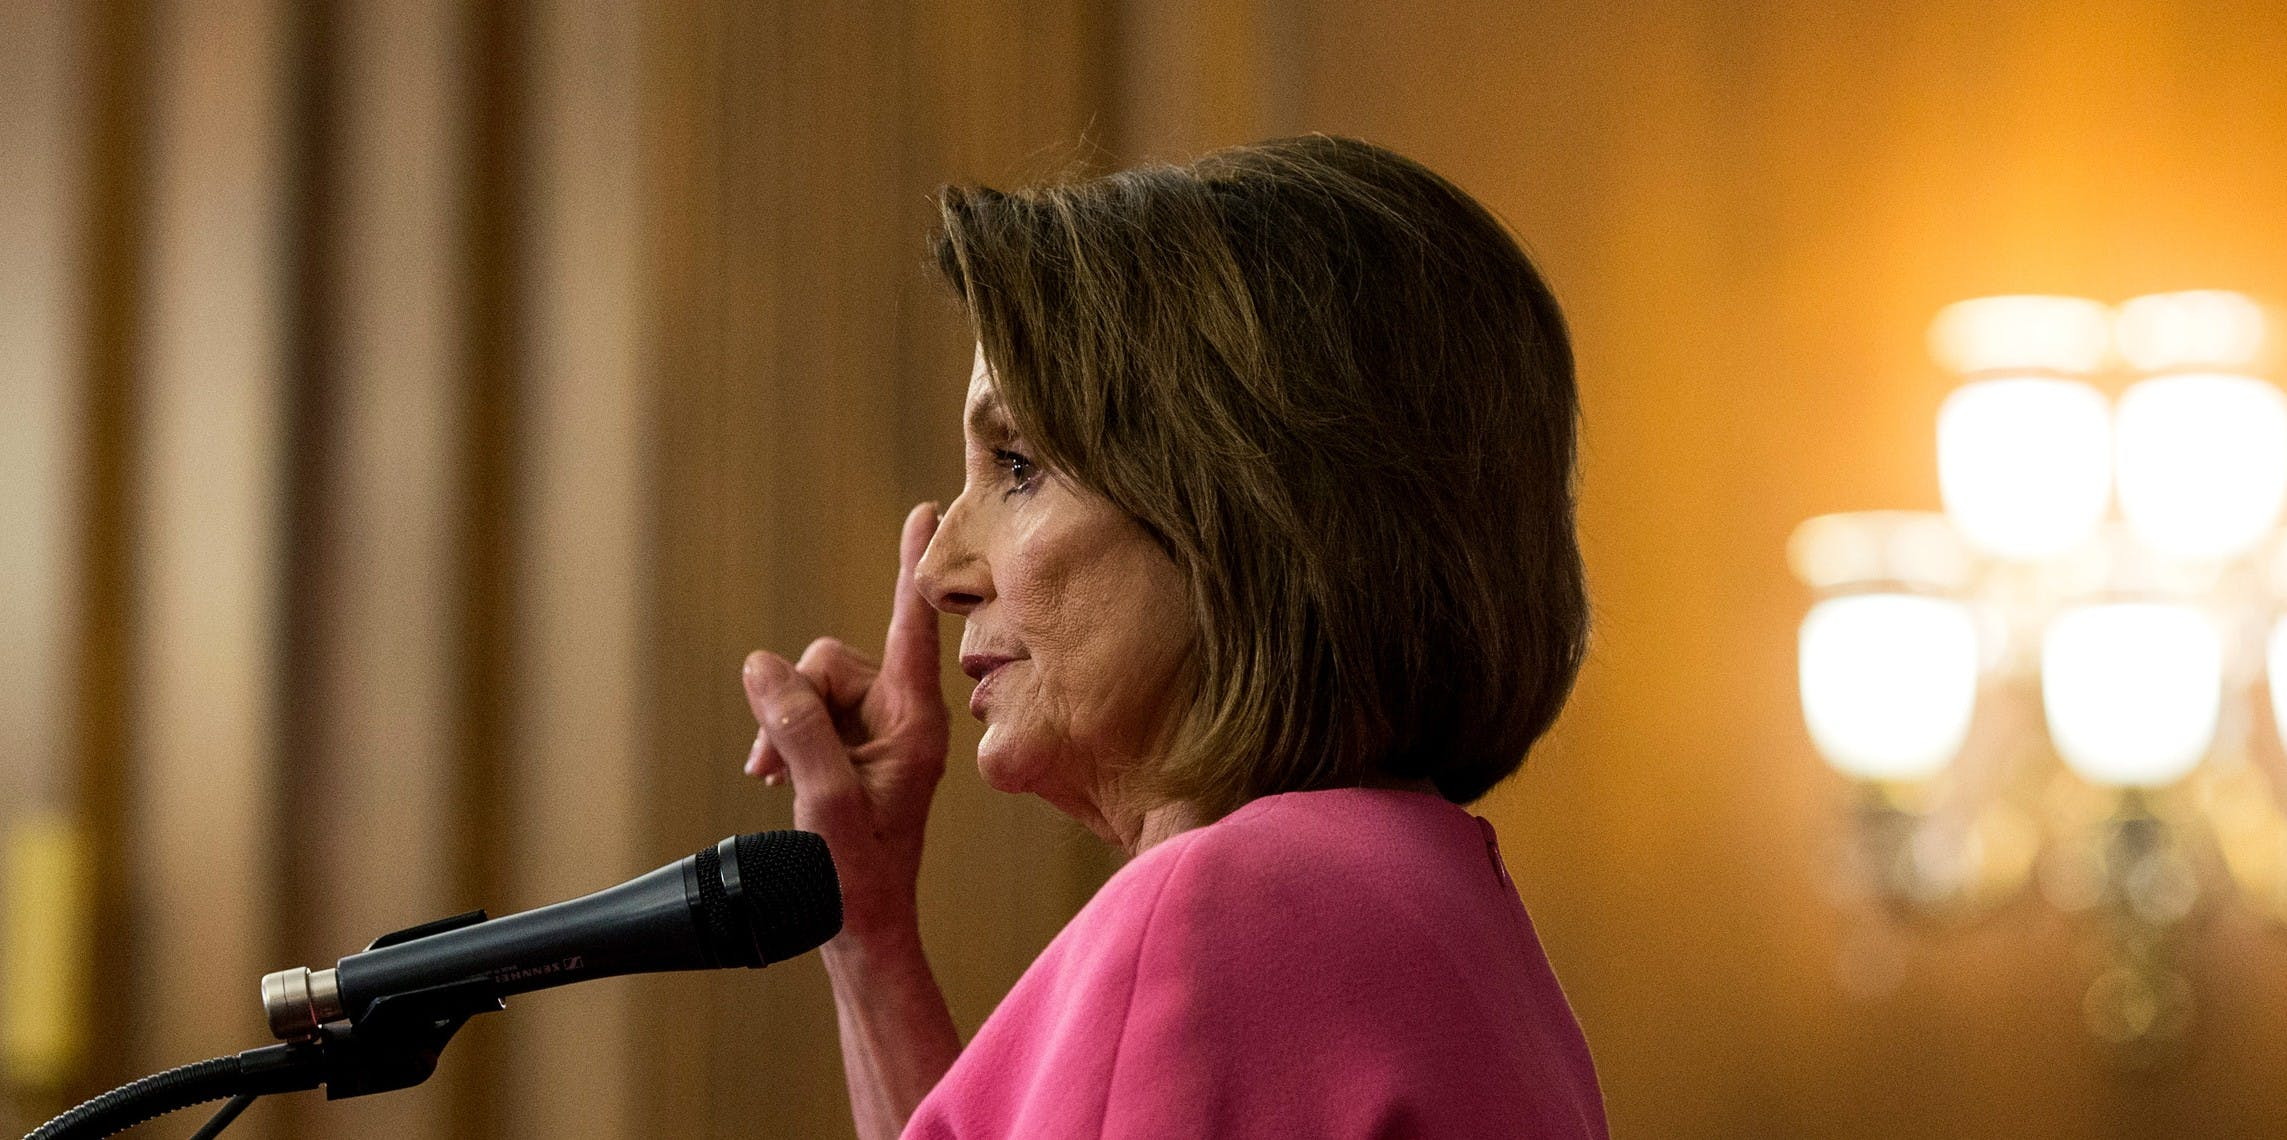 """Nancy Pelosi Wants to Find """"Common Ground"""" With Donald Trump. But Her Job Right Now Is to Fight Fascism."""